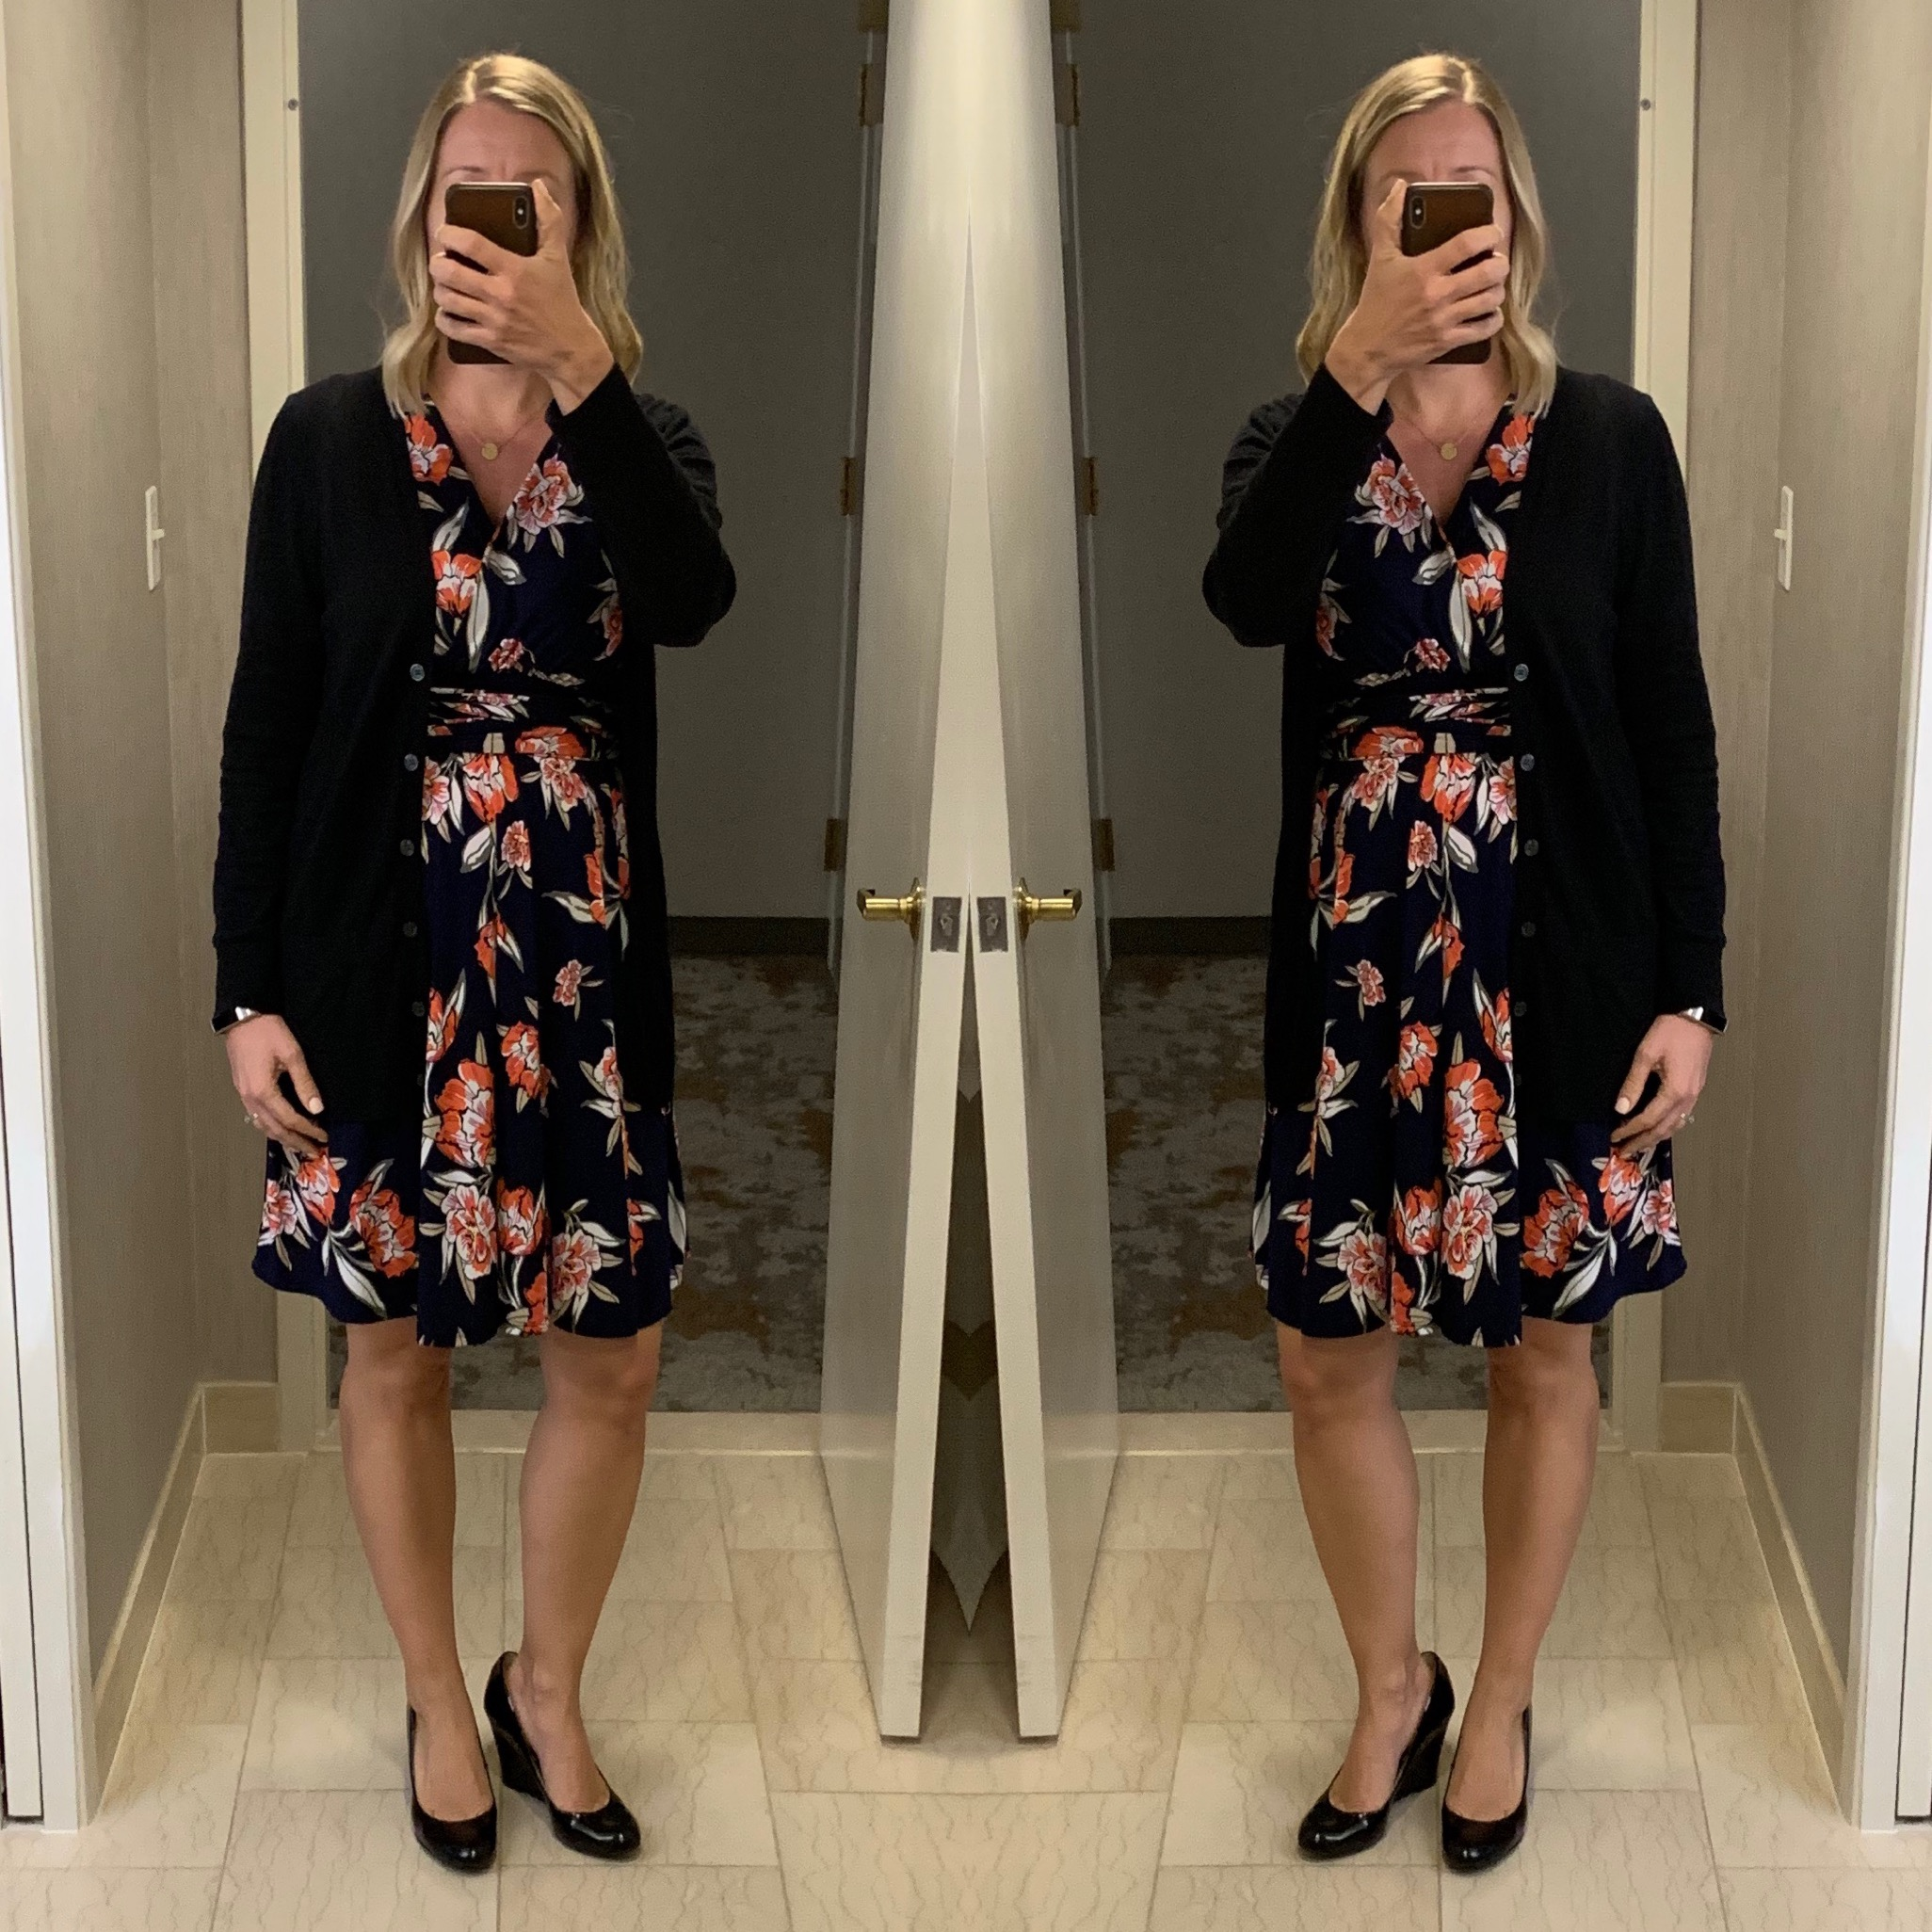 4aaa8f5f801fe2 Outfit Posts – Daily outfit posts. Mix of professional